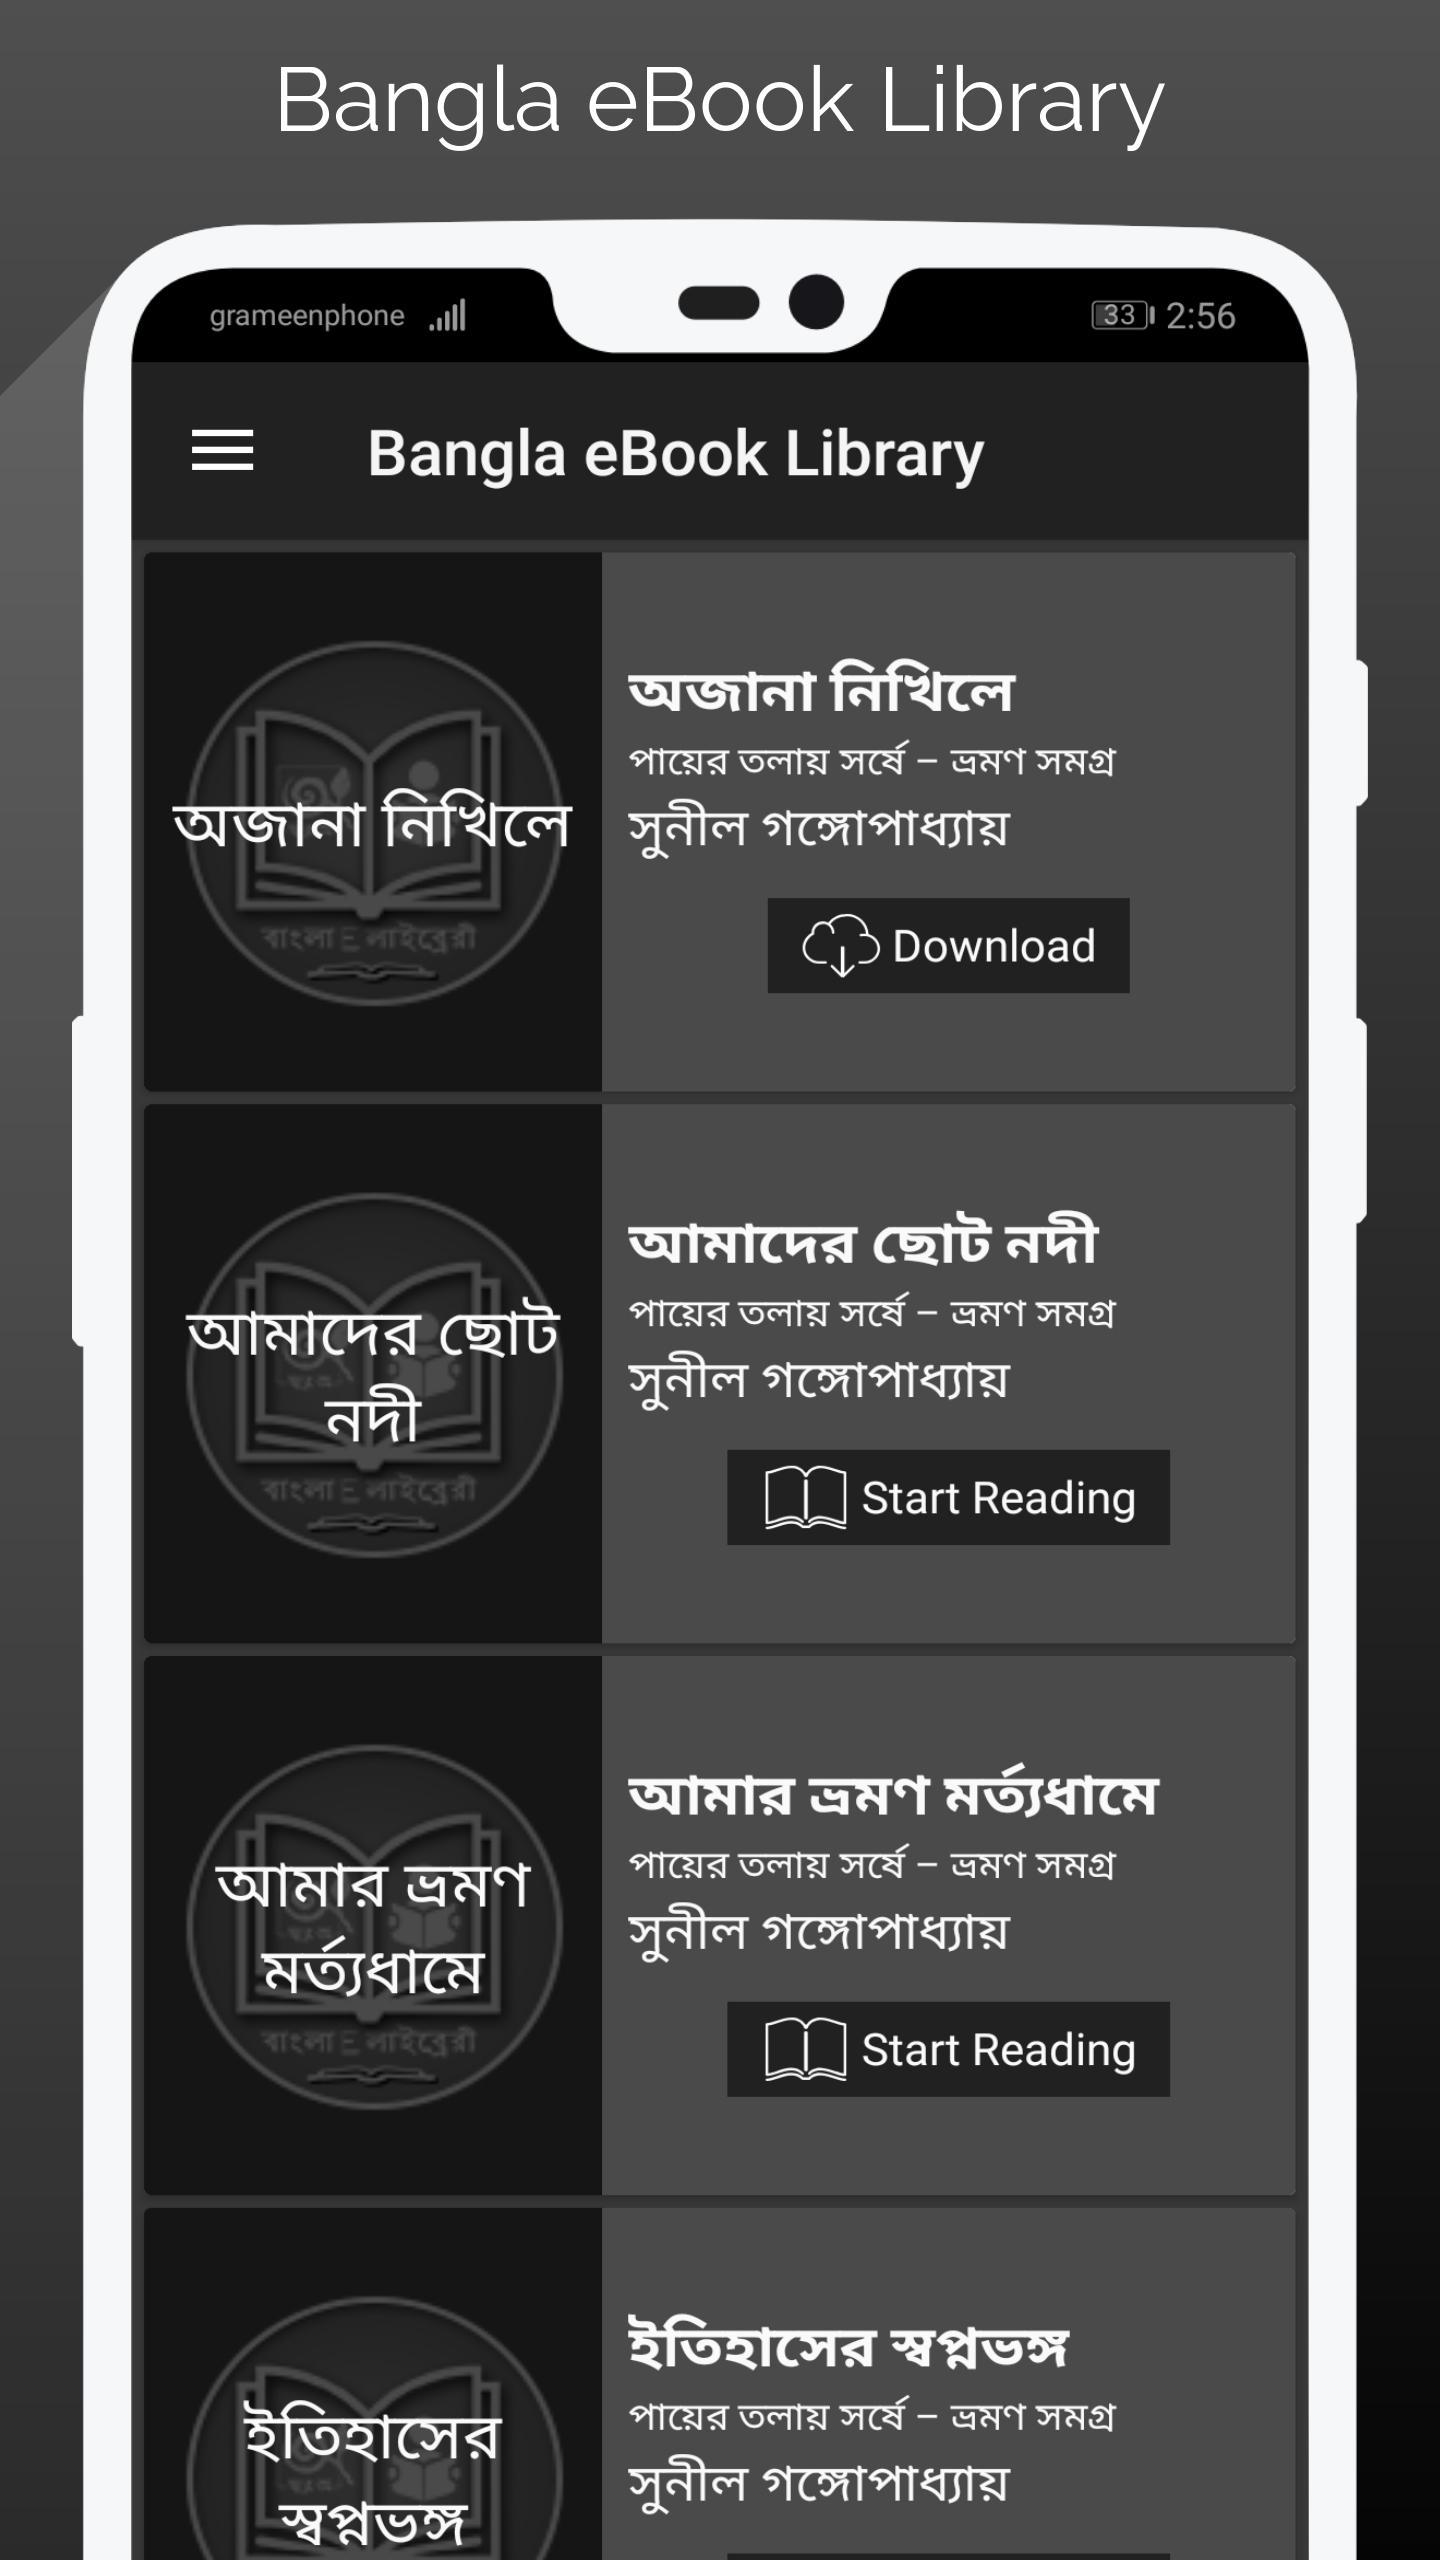 Madison : Bangla ebook free download site